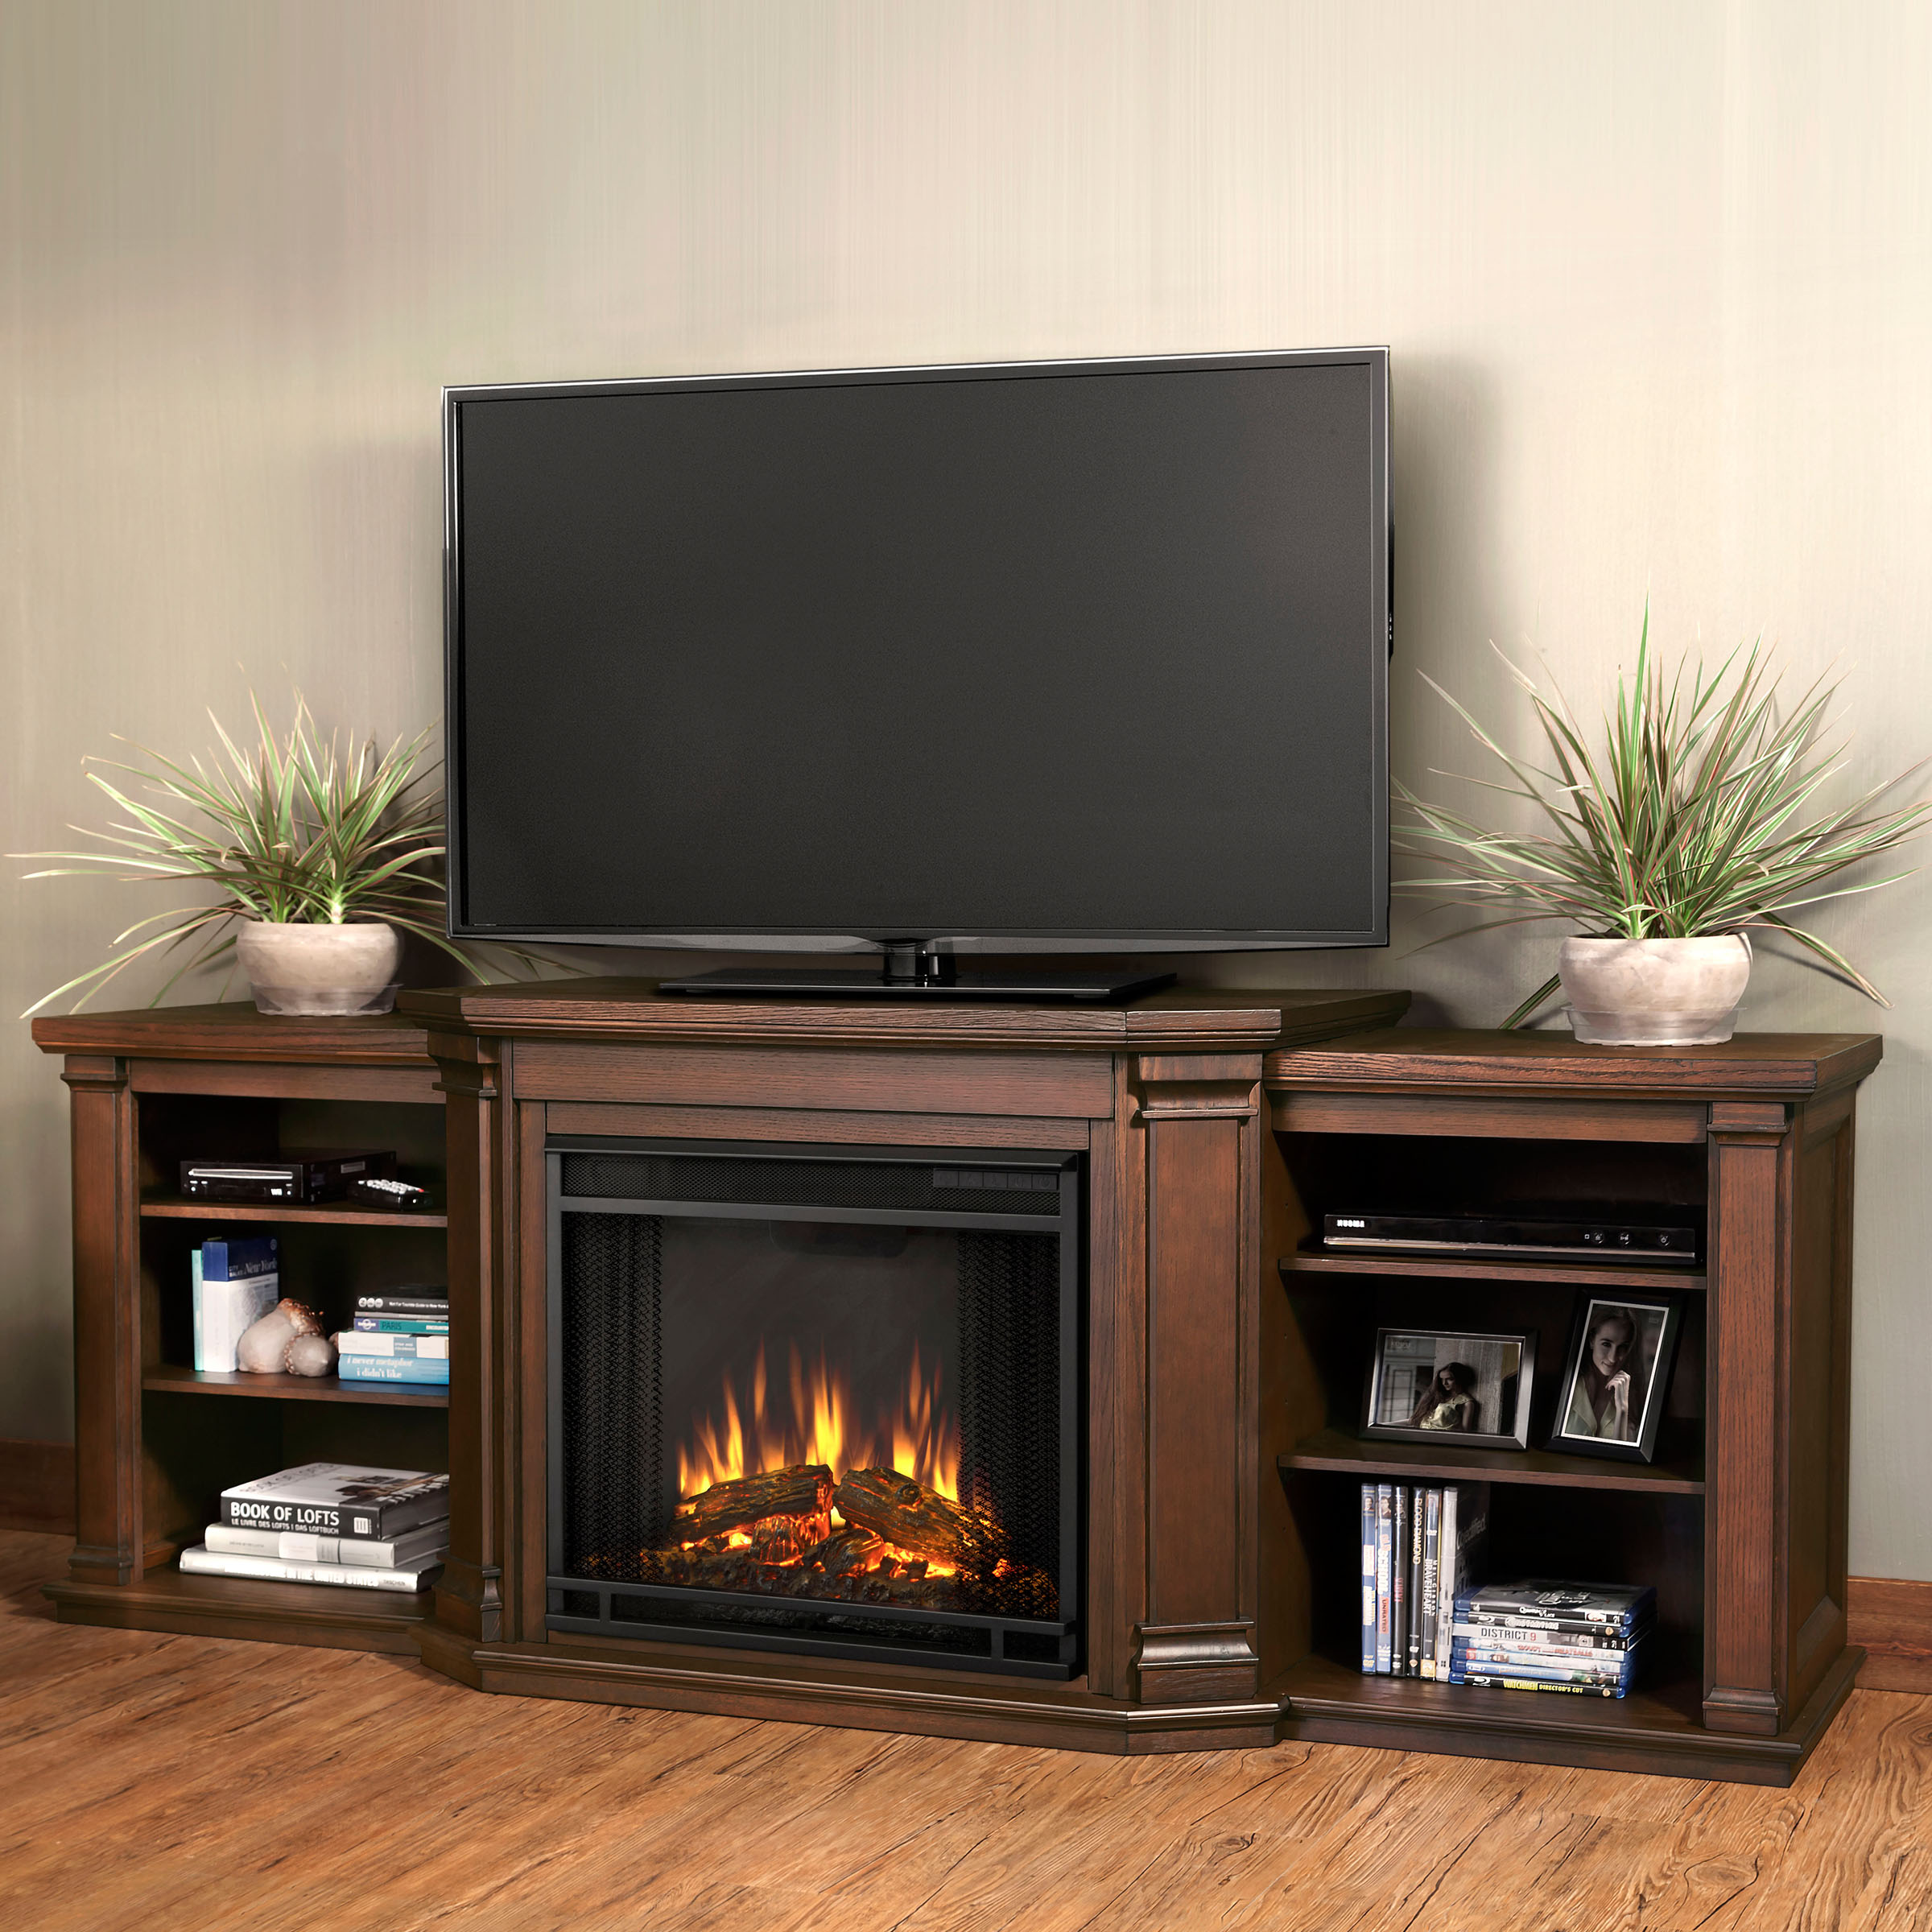 Valmont Entertainment Center Electric Fireplace in Chestnut Oak by Real Flame